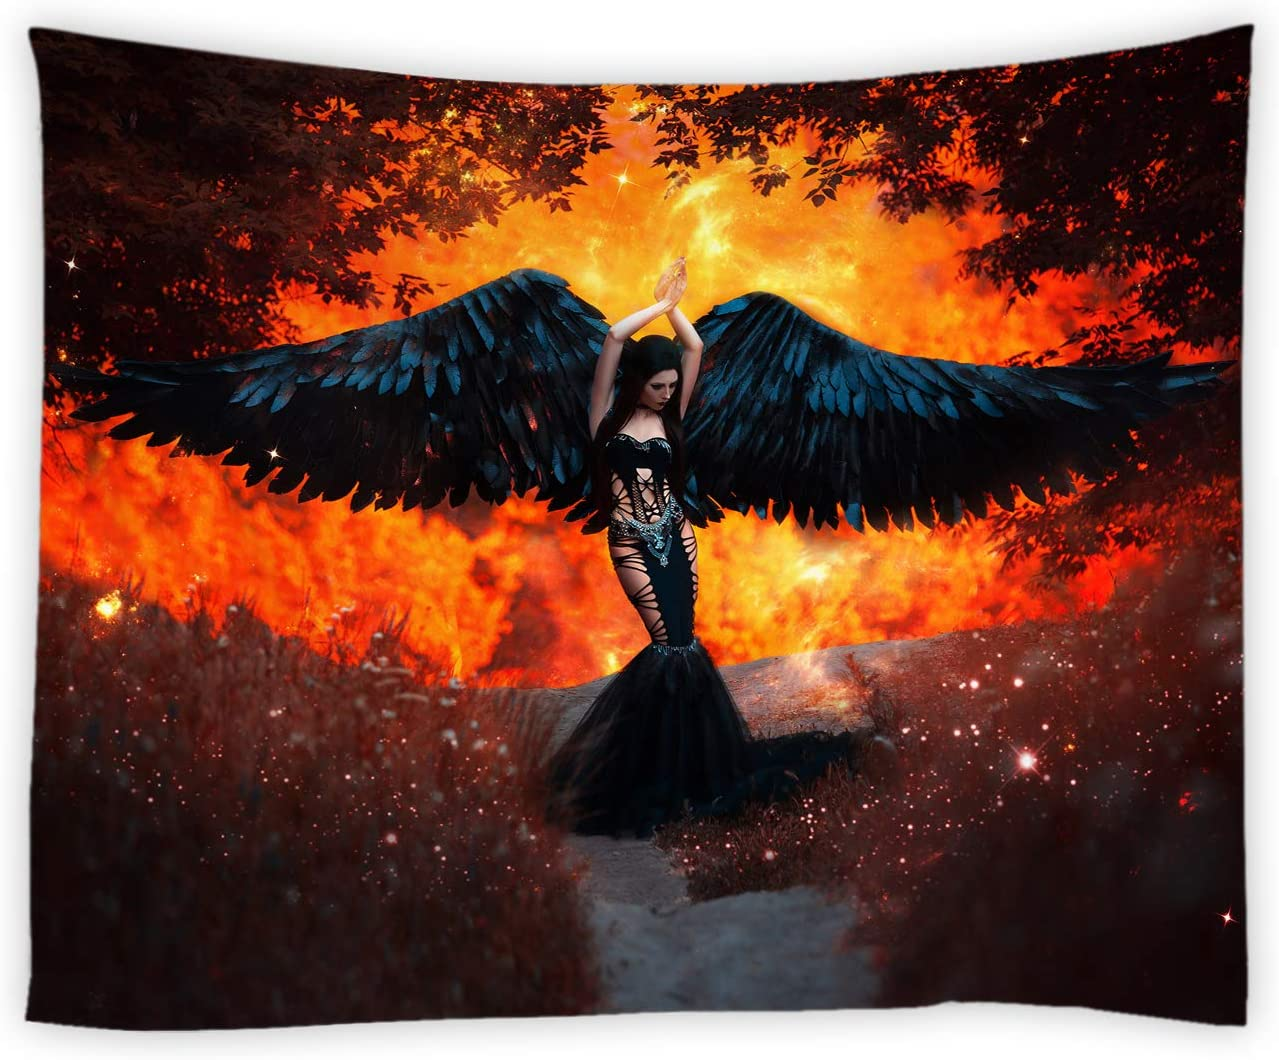 jingjiji Sexy Girl Tapestry Black Angel Woman Feather Wings Forest Red Flame Landscape Art Wall Hanging Tapestries Decor Bedroom Living Room Dorm Polyester Fabric 90 x 71 Inch